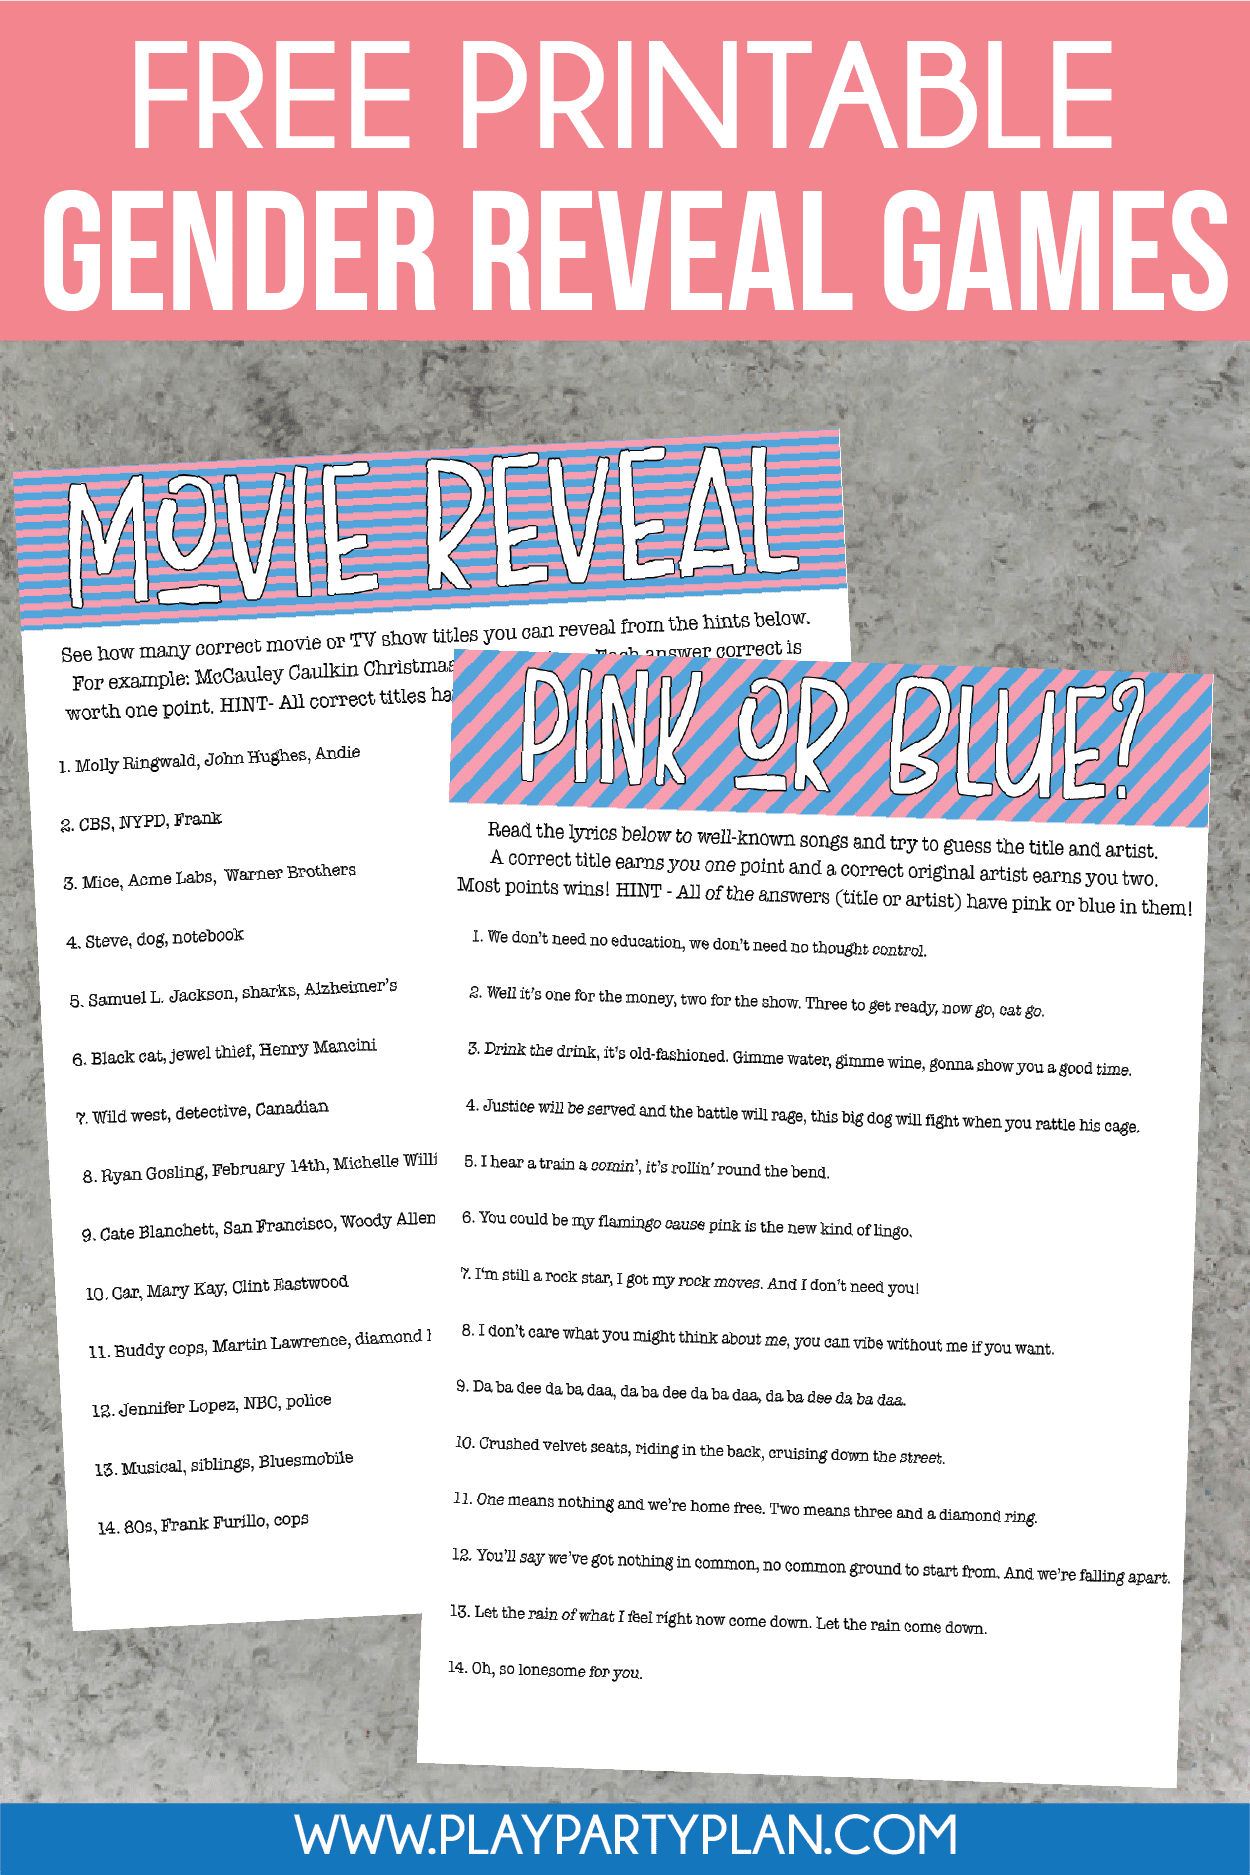 12 Of The Best Gender Reveal Party Games Ever - Play Party Plan - Free Printable Gender Reveal Templates